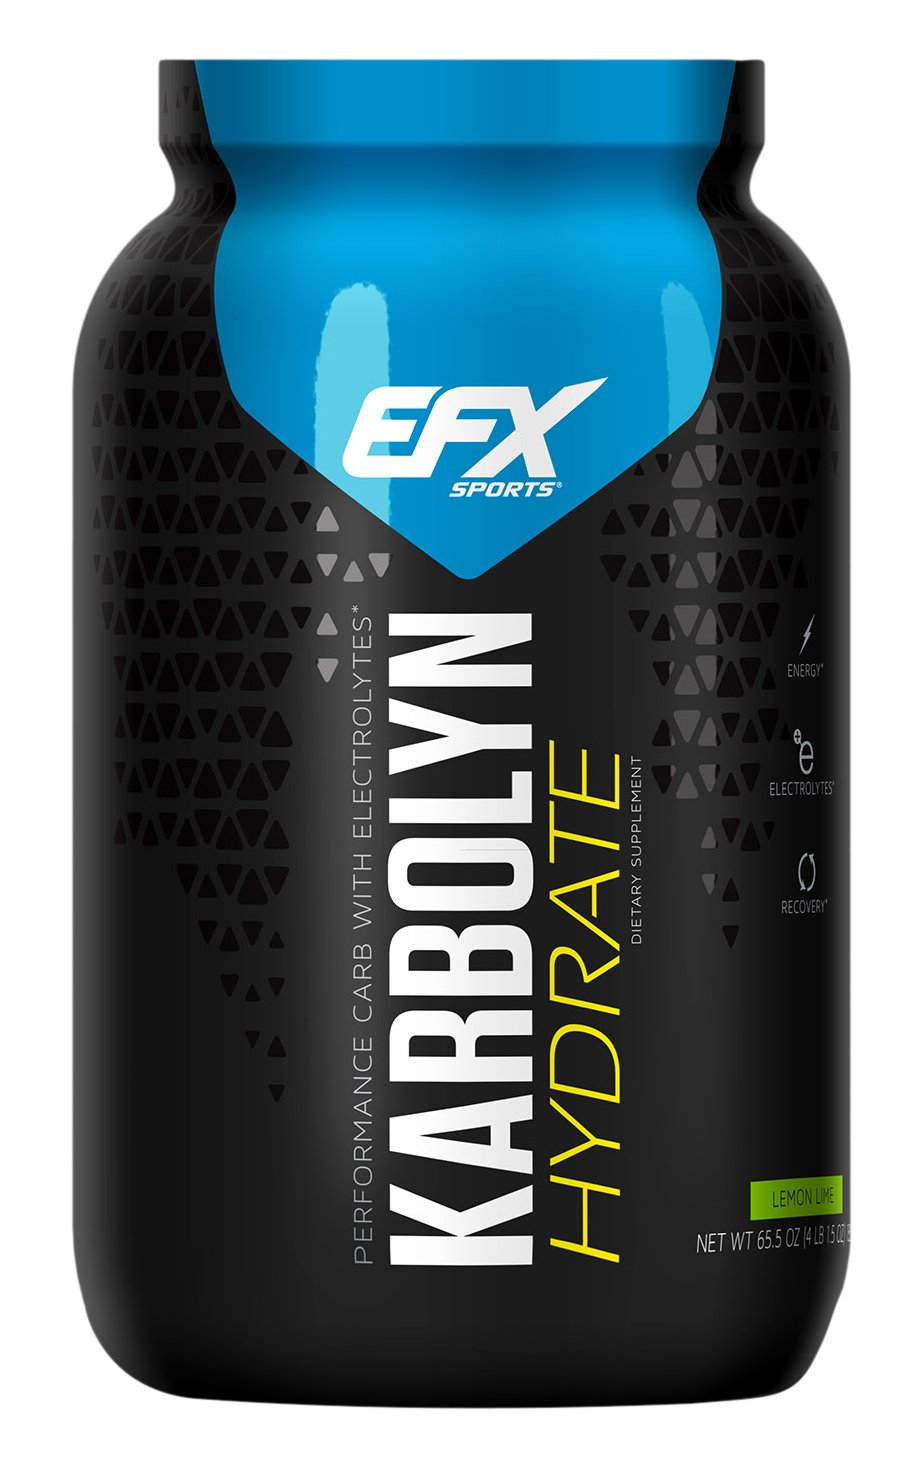 EFX Sports Karbolyn Hydrate Powder, Lemon Lime, 65.5 Ounce